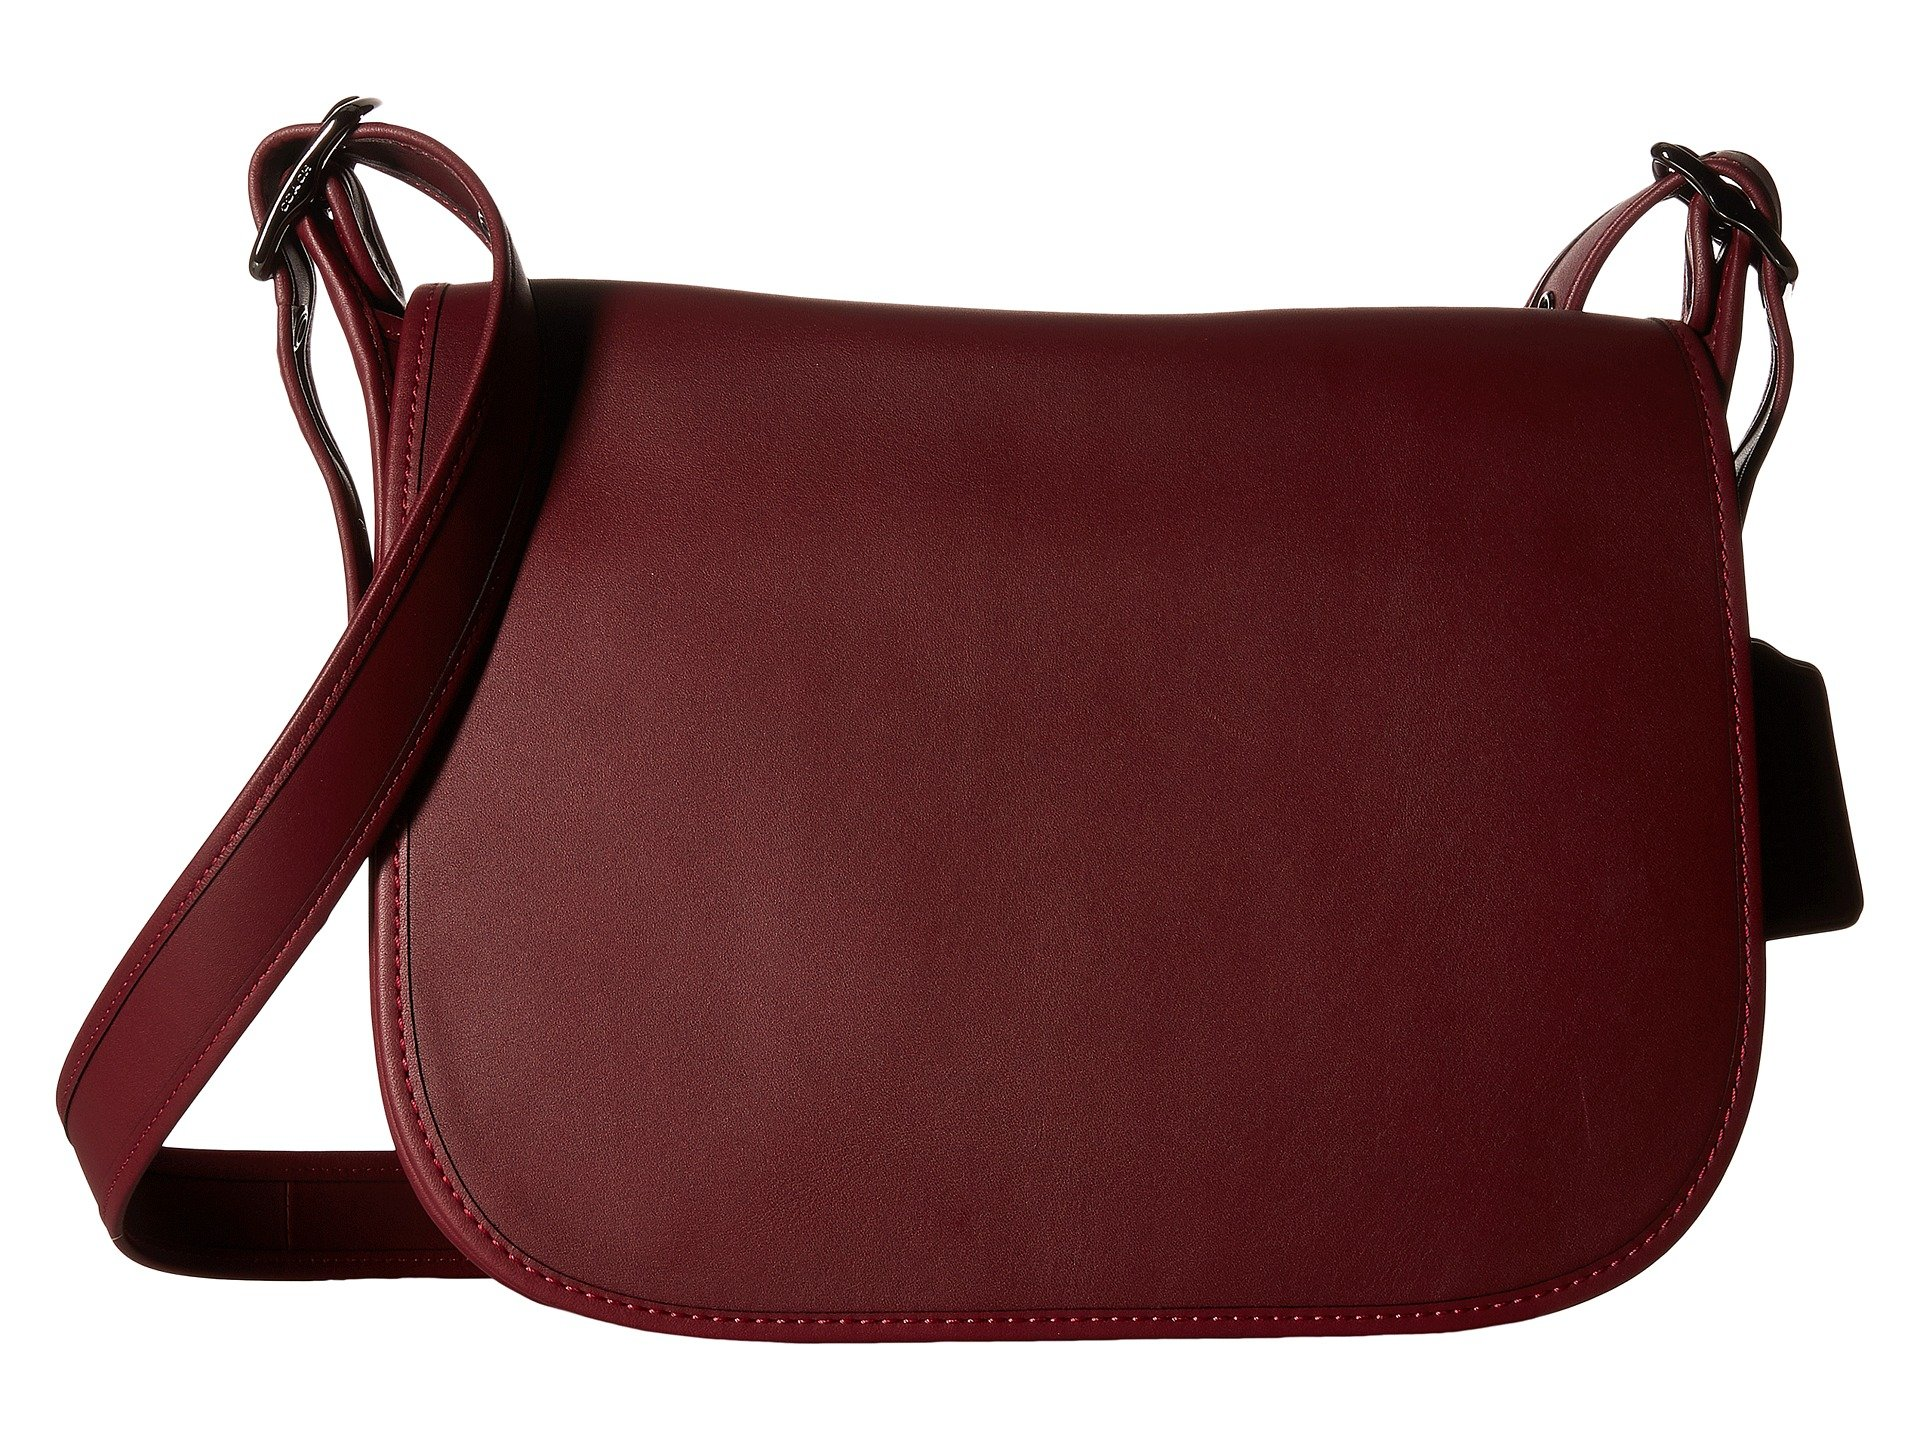 COACH Women's Gloveton Leather Saddle Bag DK/Burgundy Cross Body